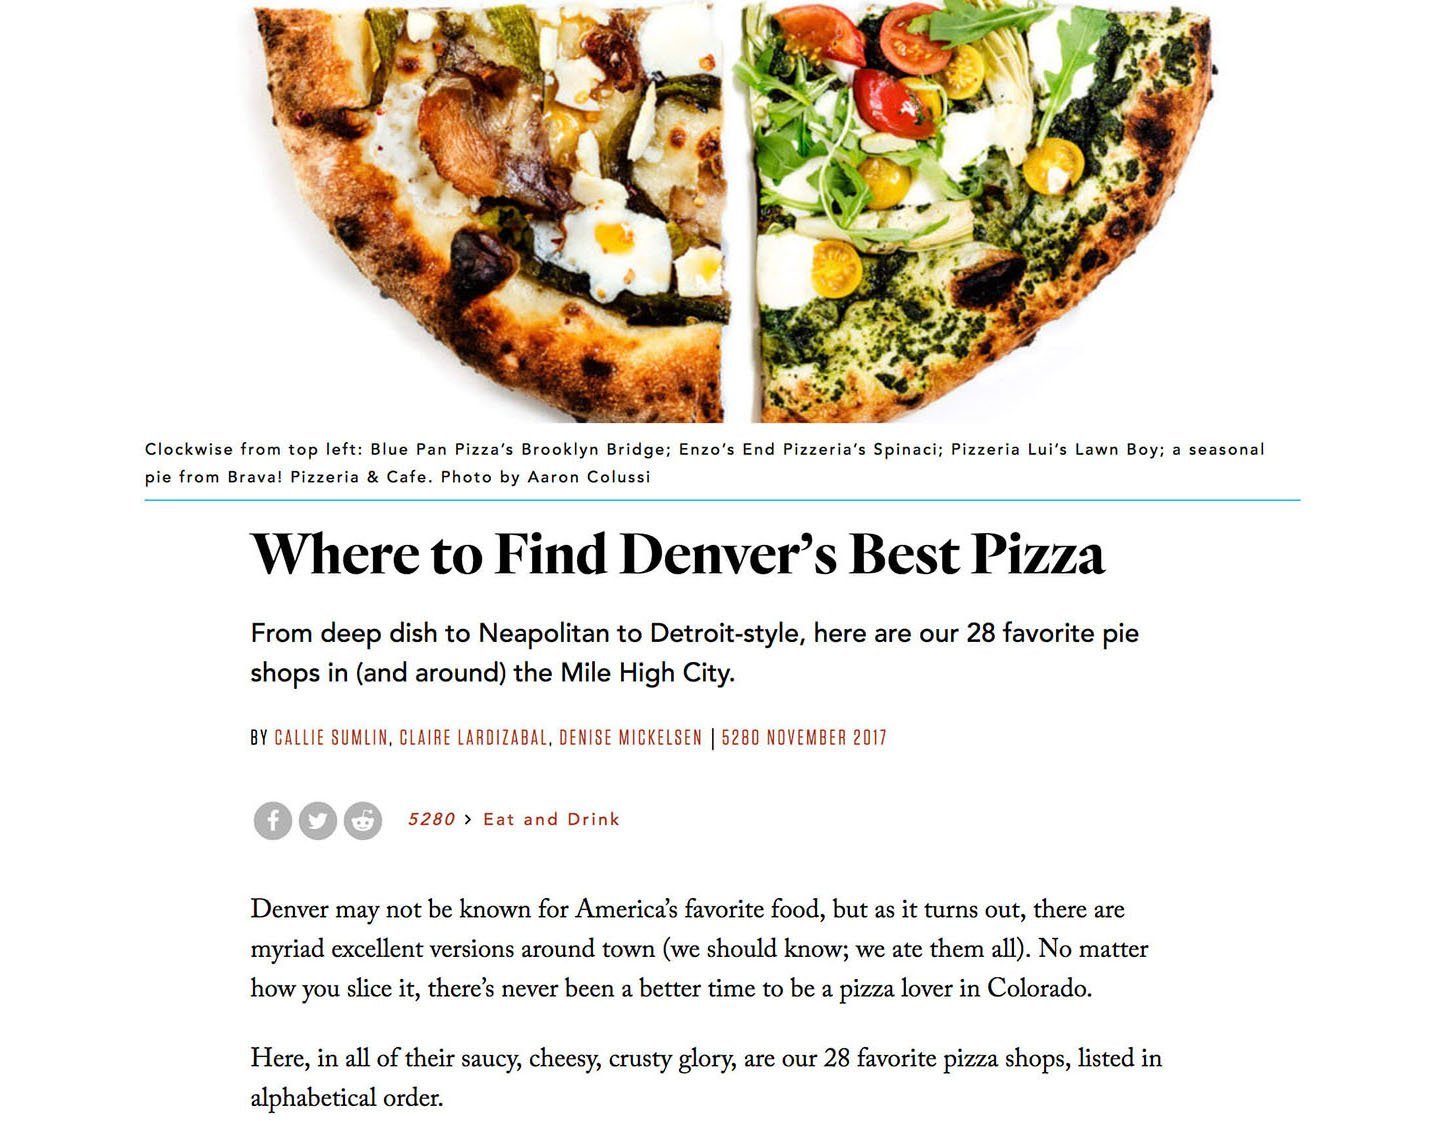 This where to find Denver's best pizza is a great example of a roundup page – McBreen Marketing